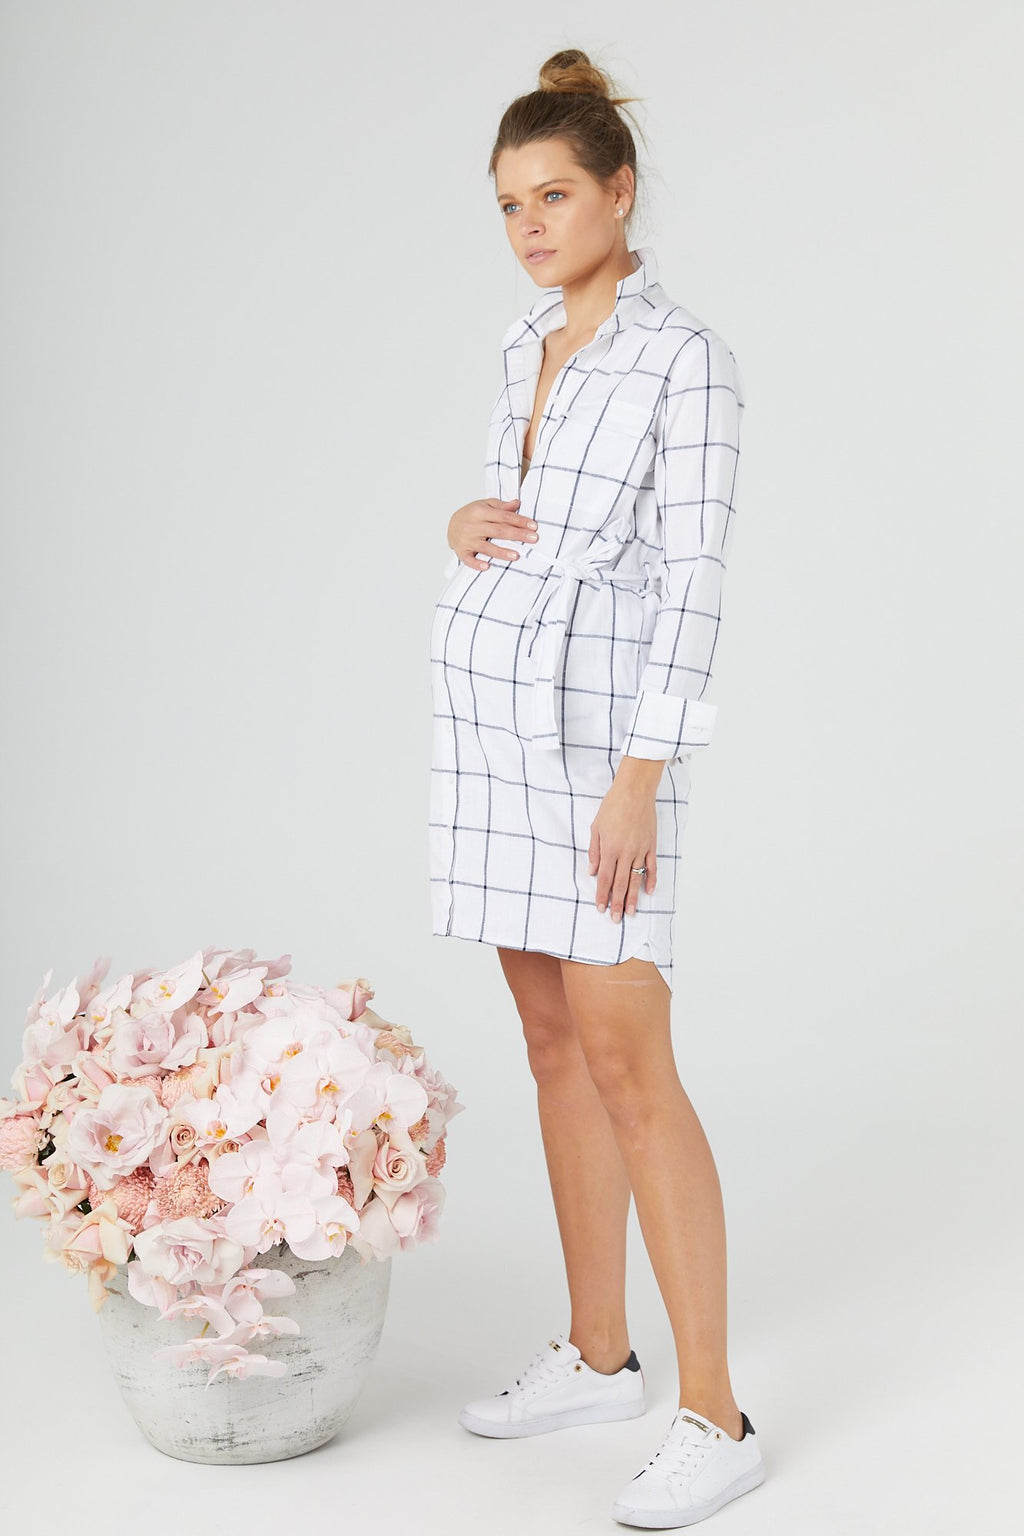 Classic Check Shirt Dress, White and Navy, for maternity and breastfeeding